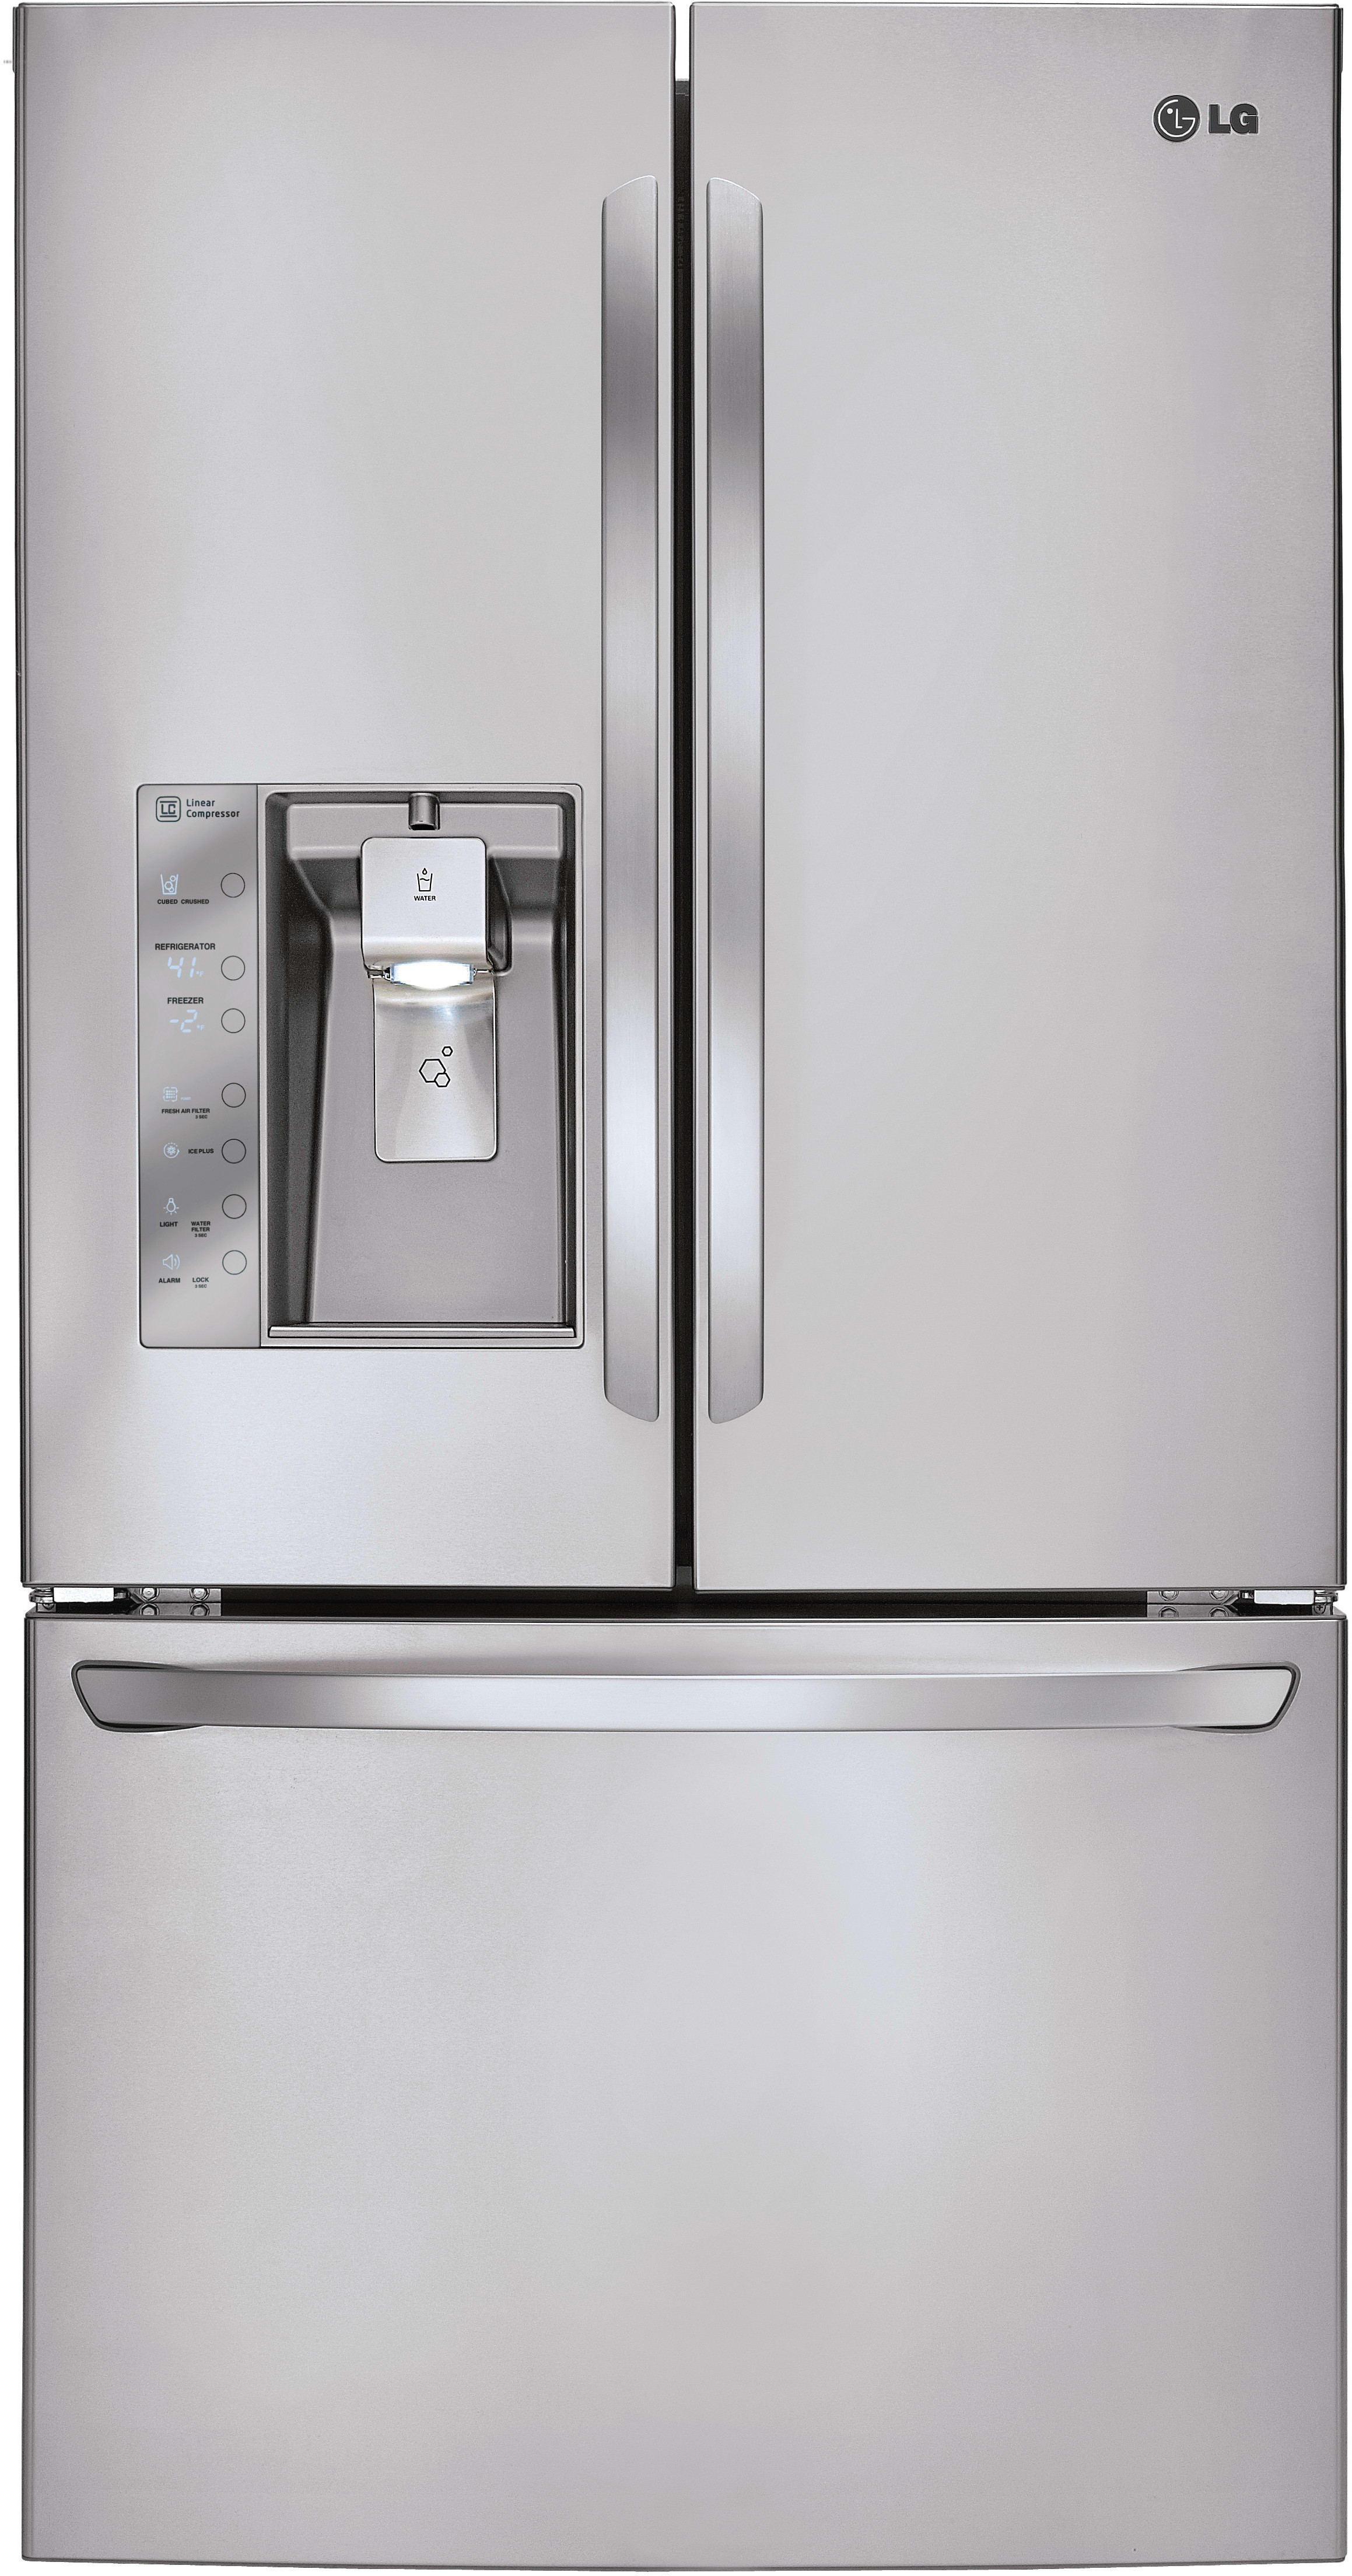 LG LFXS29626S 36 Inch French Door Refrigerator With Smart Cooling®, Slim  SpacePlus®, Dual Ice Makers, Glide Nu0027 Serve™ Drawer, Linear Compressor, ...